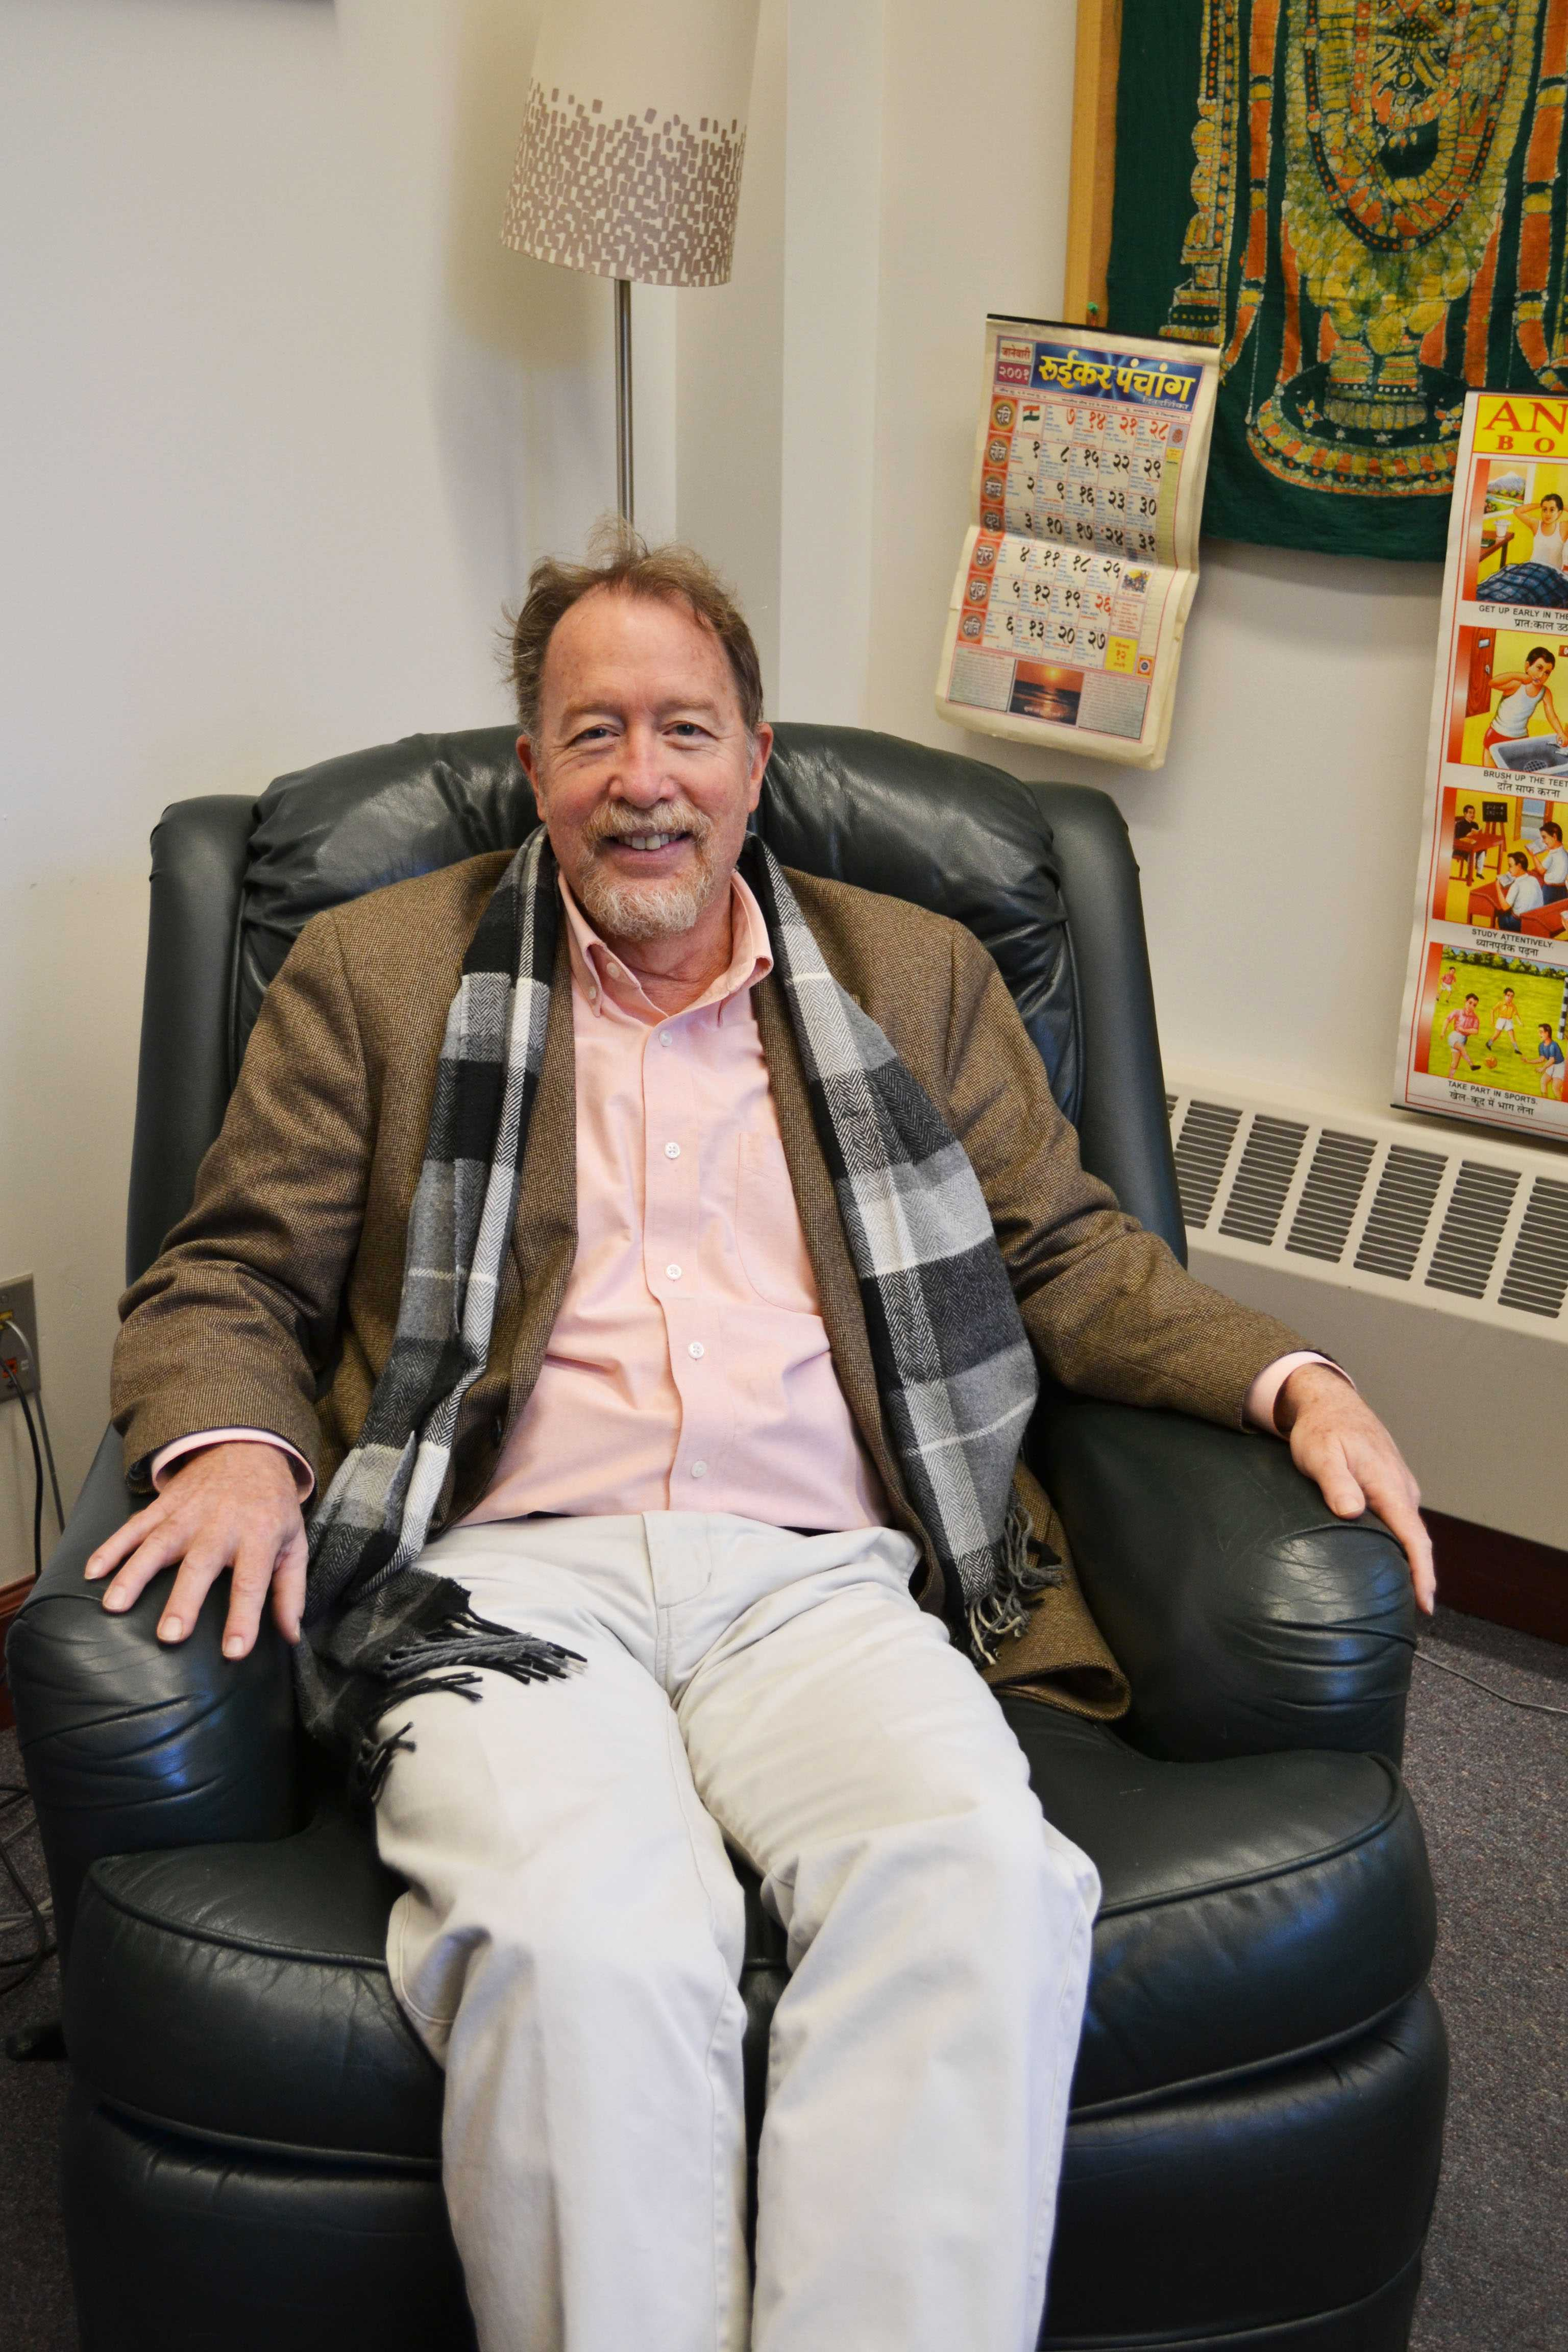 Professor Jim Laine poses alongside his office decorations. Photo by Alta Connors '19.